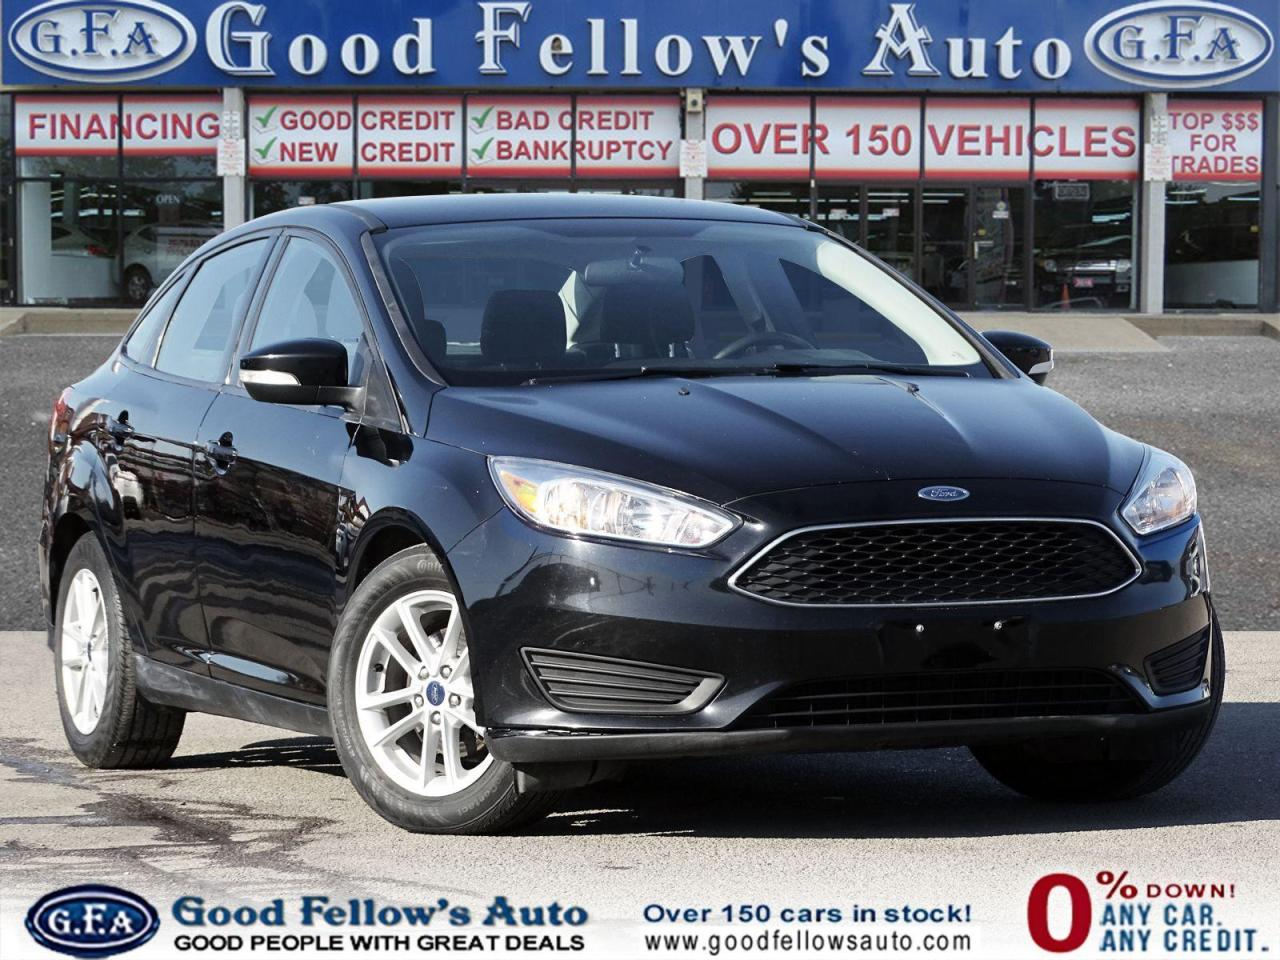 used 2017 Ford Focus car, priced at $12,400